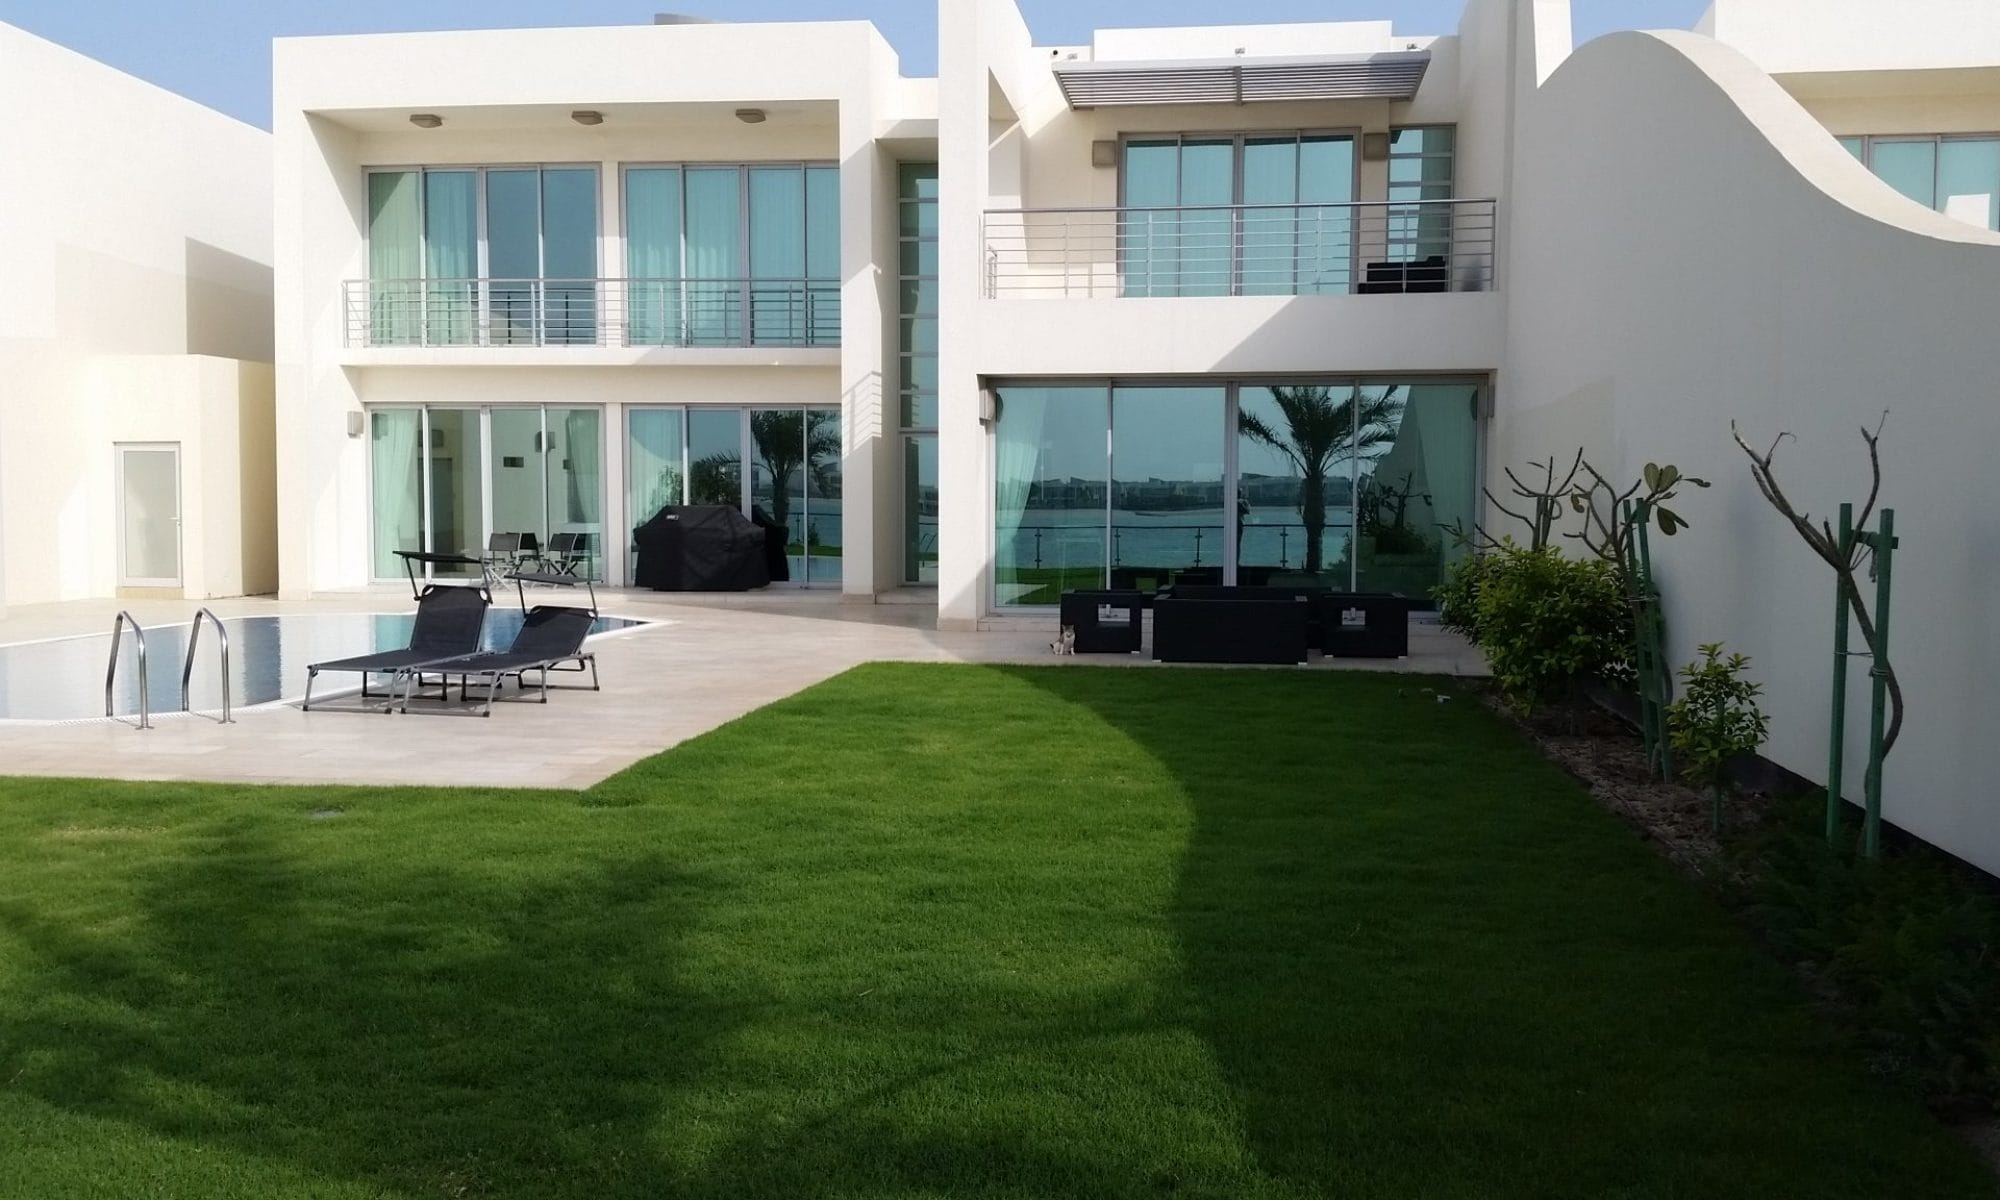 Durrat al Bahrain - Beach-Villa for Sale: 465,000 BD - negotiable